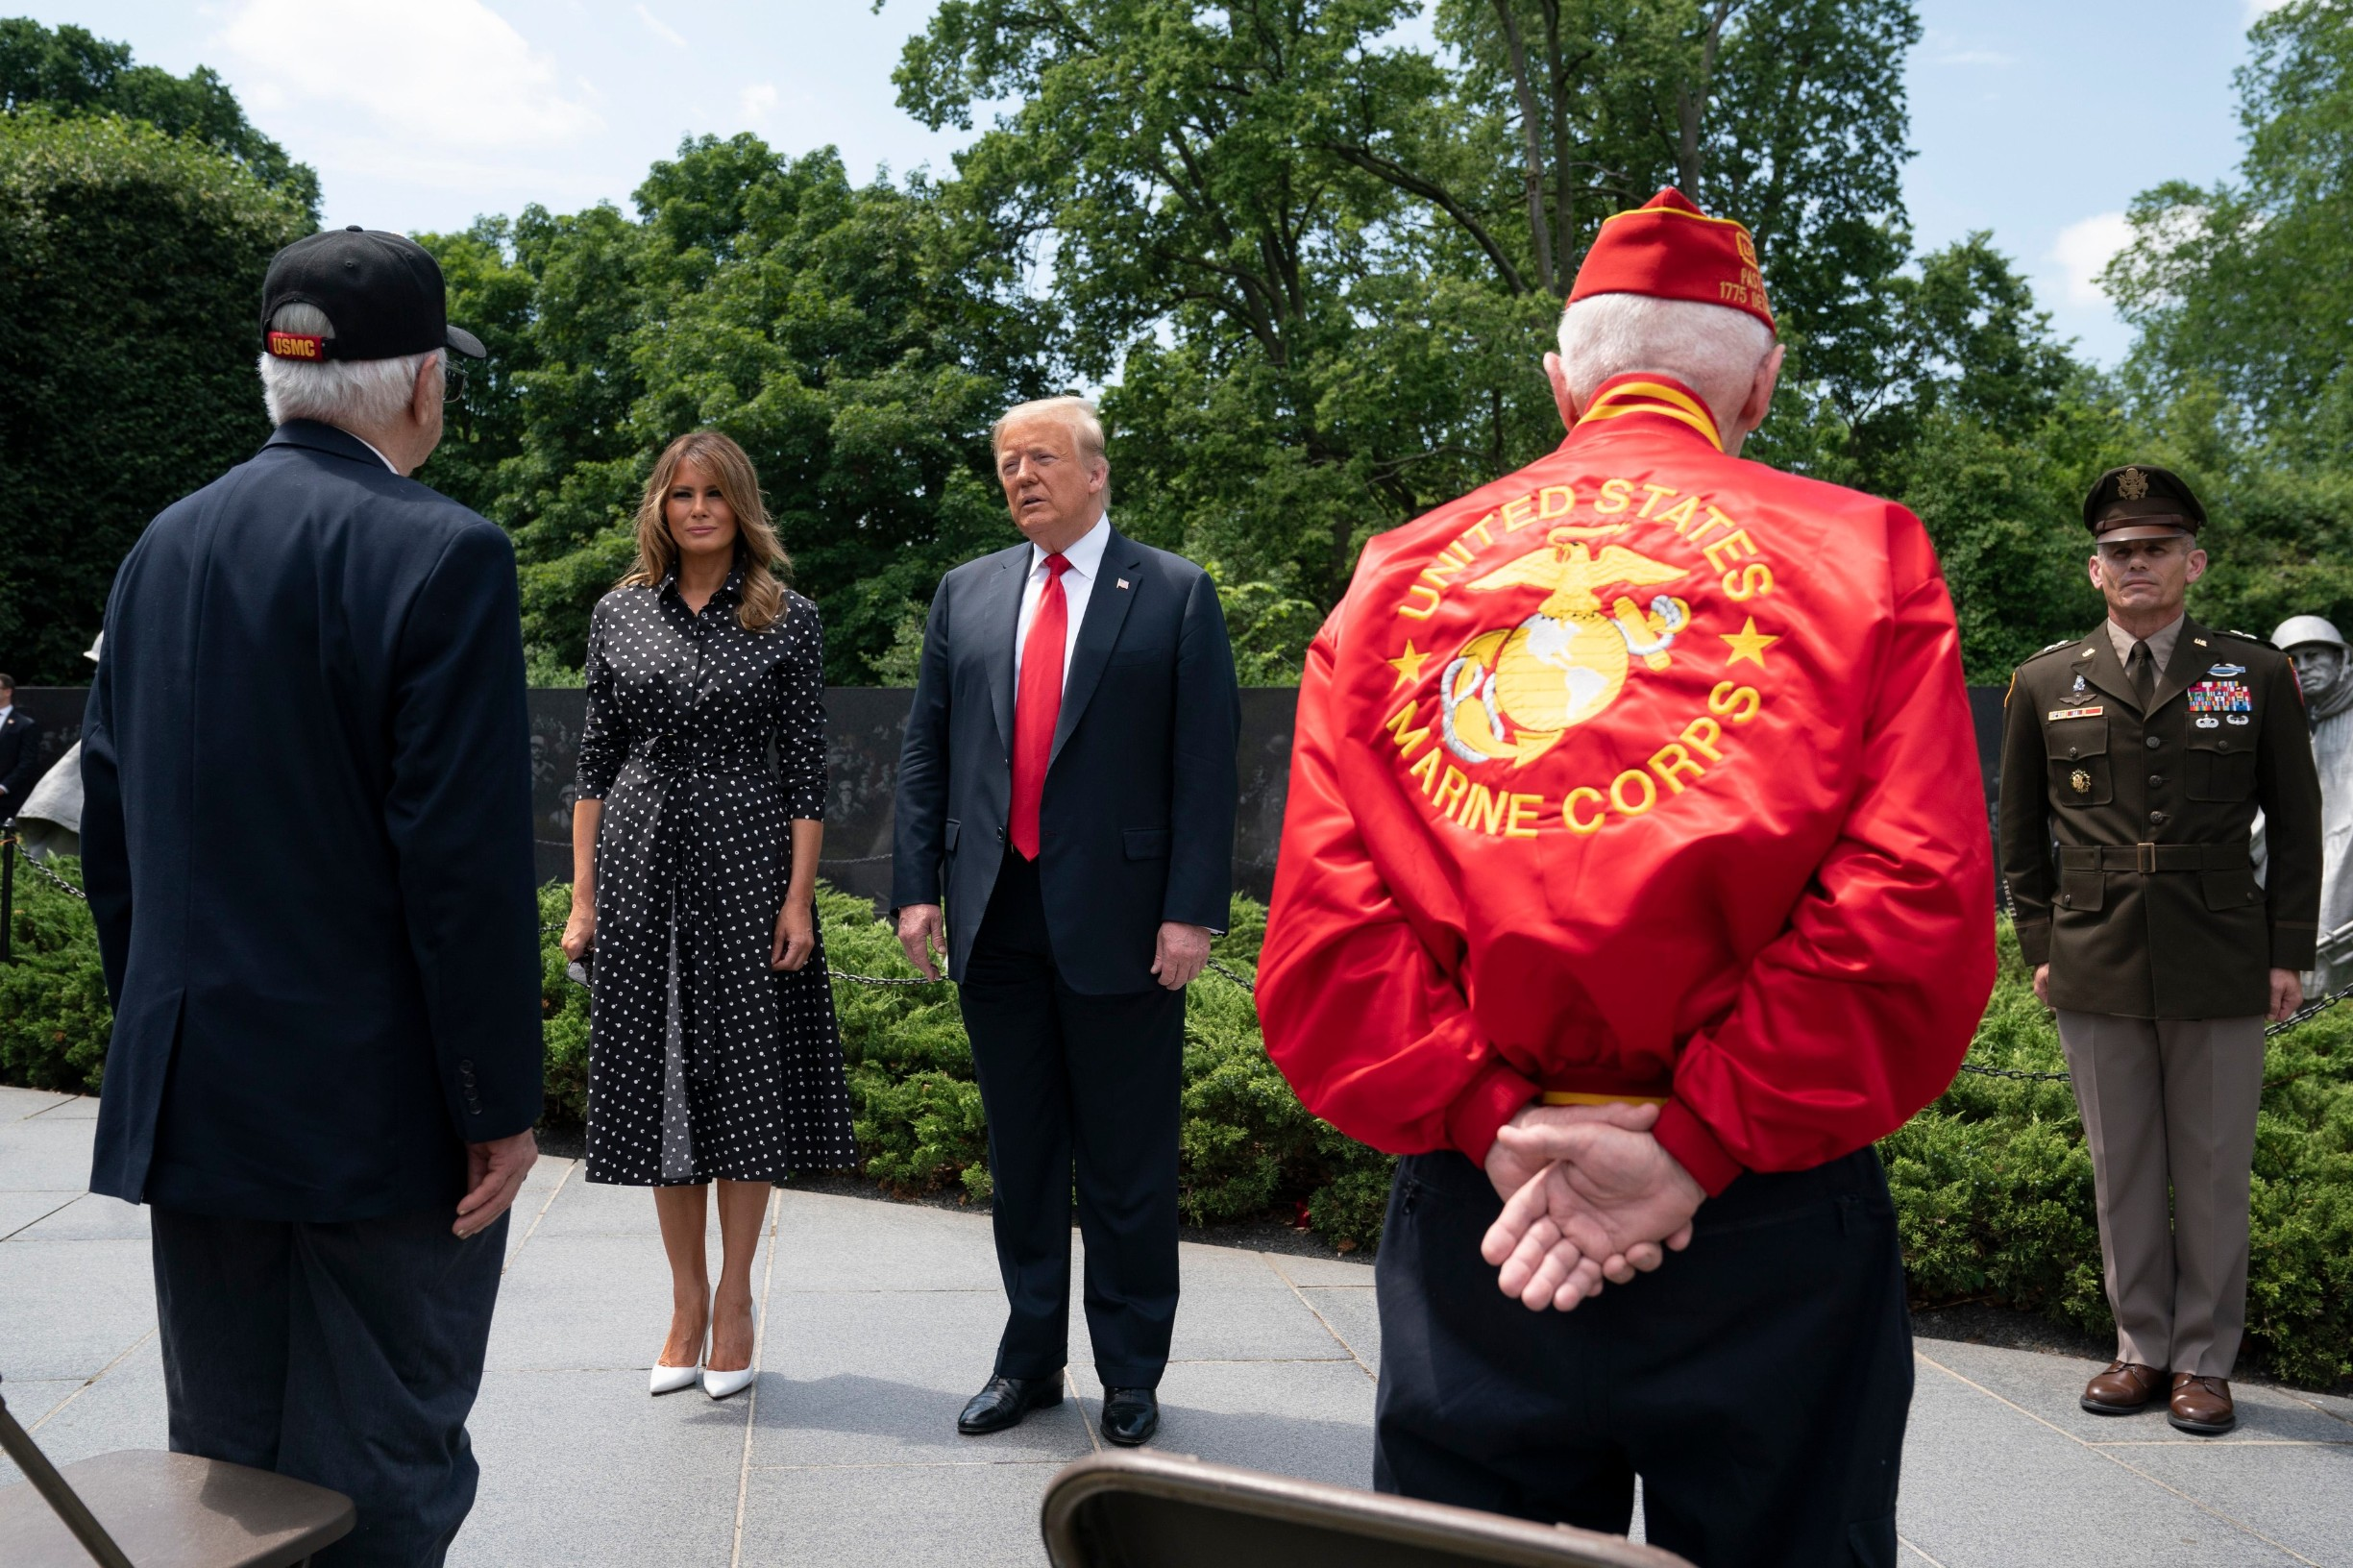 US President Donald J. Trump, alongside First Lady Melania Trump, greets Korean War veterans at the Korean War Veterans Memorial in Washington, DC, USA, 25 June 2020. On 24 June, in the wake of anti-racism protests aimed at monuments around the country, the president activated the National Guard to provide unarmed security for monuments in the nation's capital.,Image: 535827581, License: Rights-managed, Restrictions: WORLD RIGHTS - Fee Payable Upon Reproduction - For queries contact Avalon.red - sales@avalon.red London: +44 (0) 20 7421 6000 Los Angeles: +1 (310) 822 0419 Berlin: +49 (0) 30 76 212 251, Model Release: no, Credit line: Avalon.red / Avalon Editorial / Profimedia